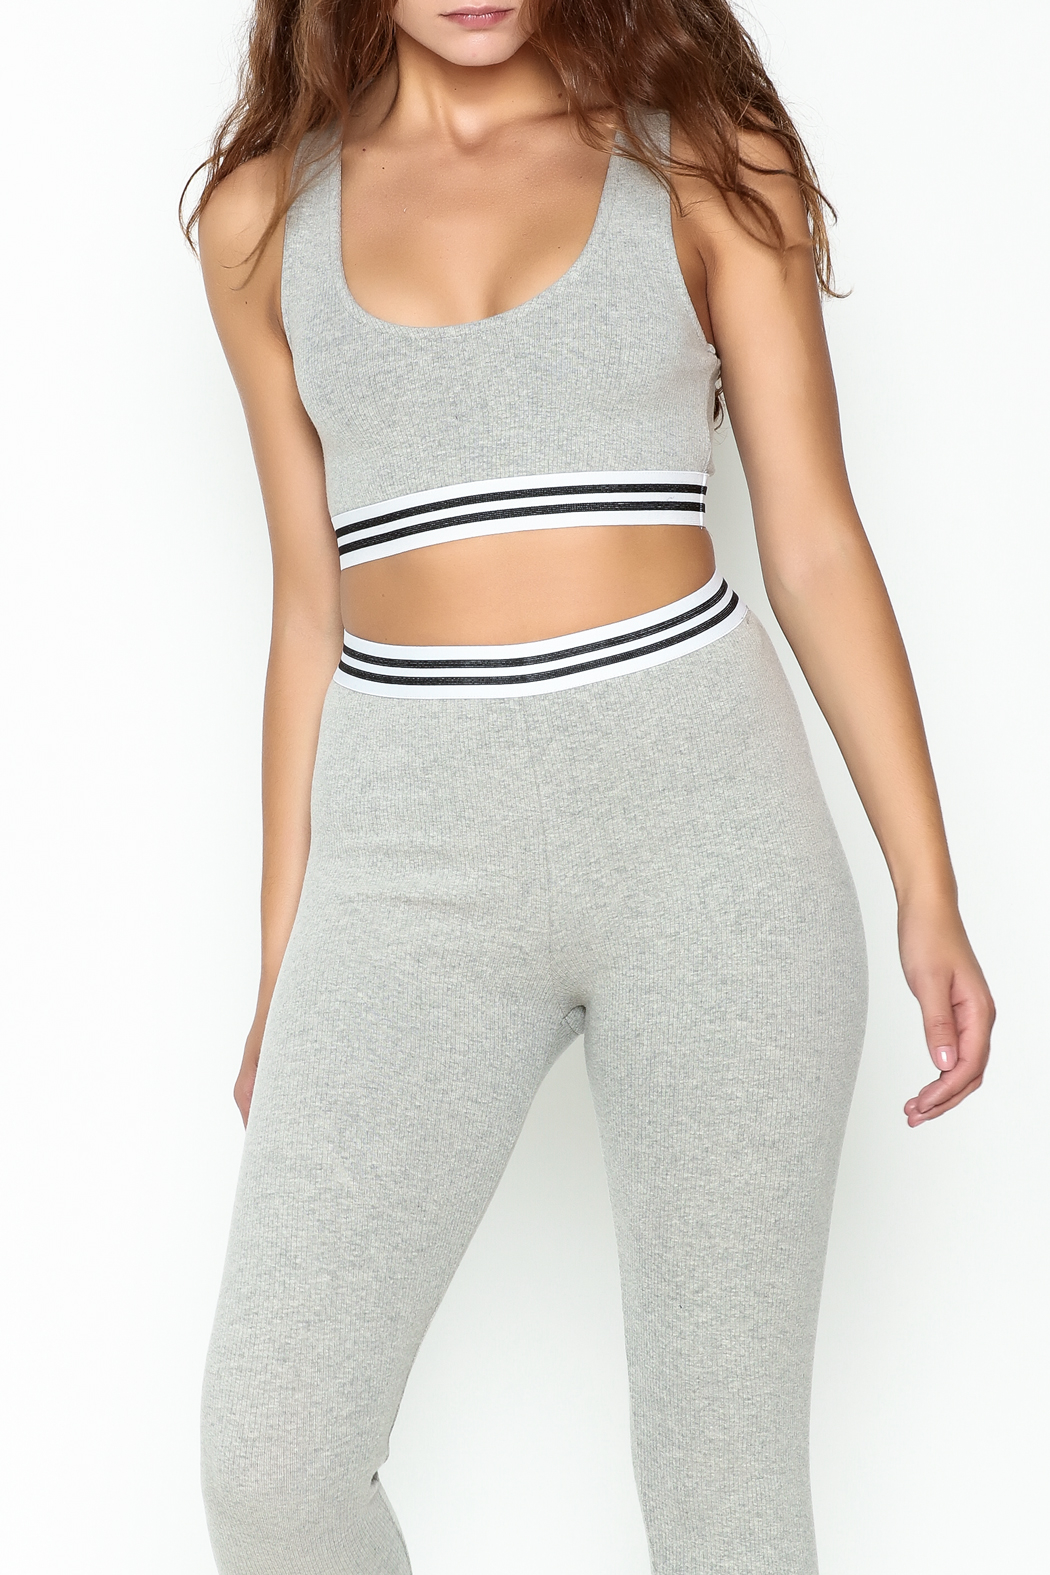 Honey Punch Athletic Stripe Sports Bra - Front Cropped Image